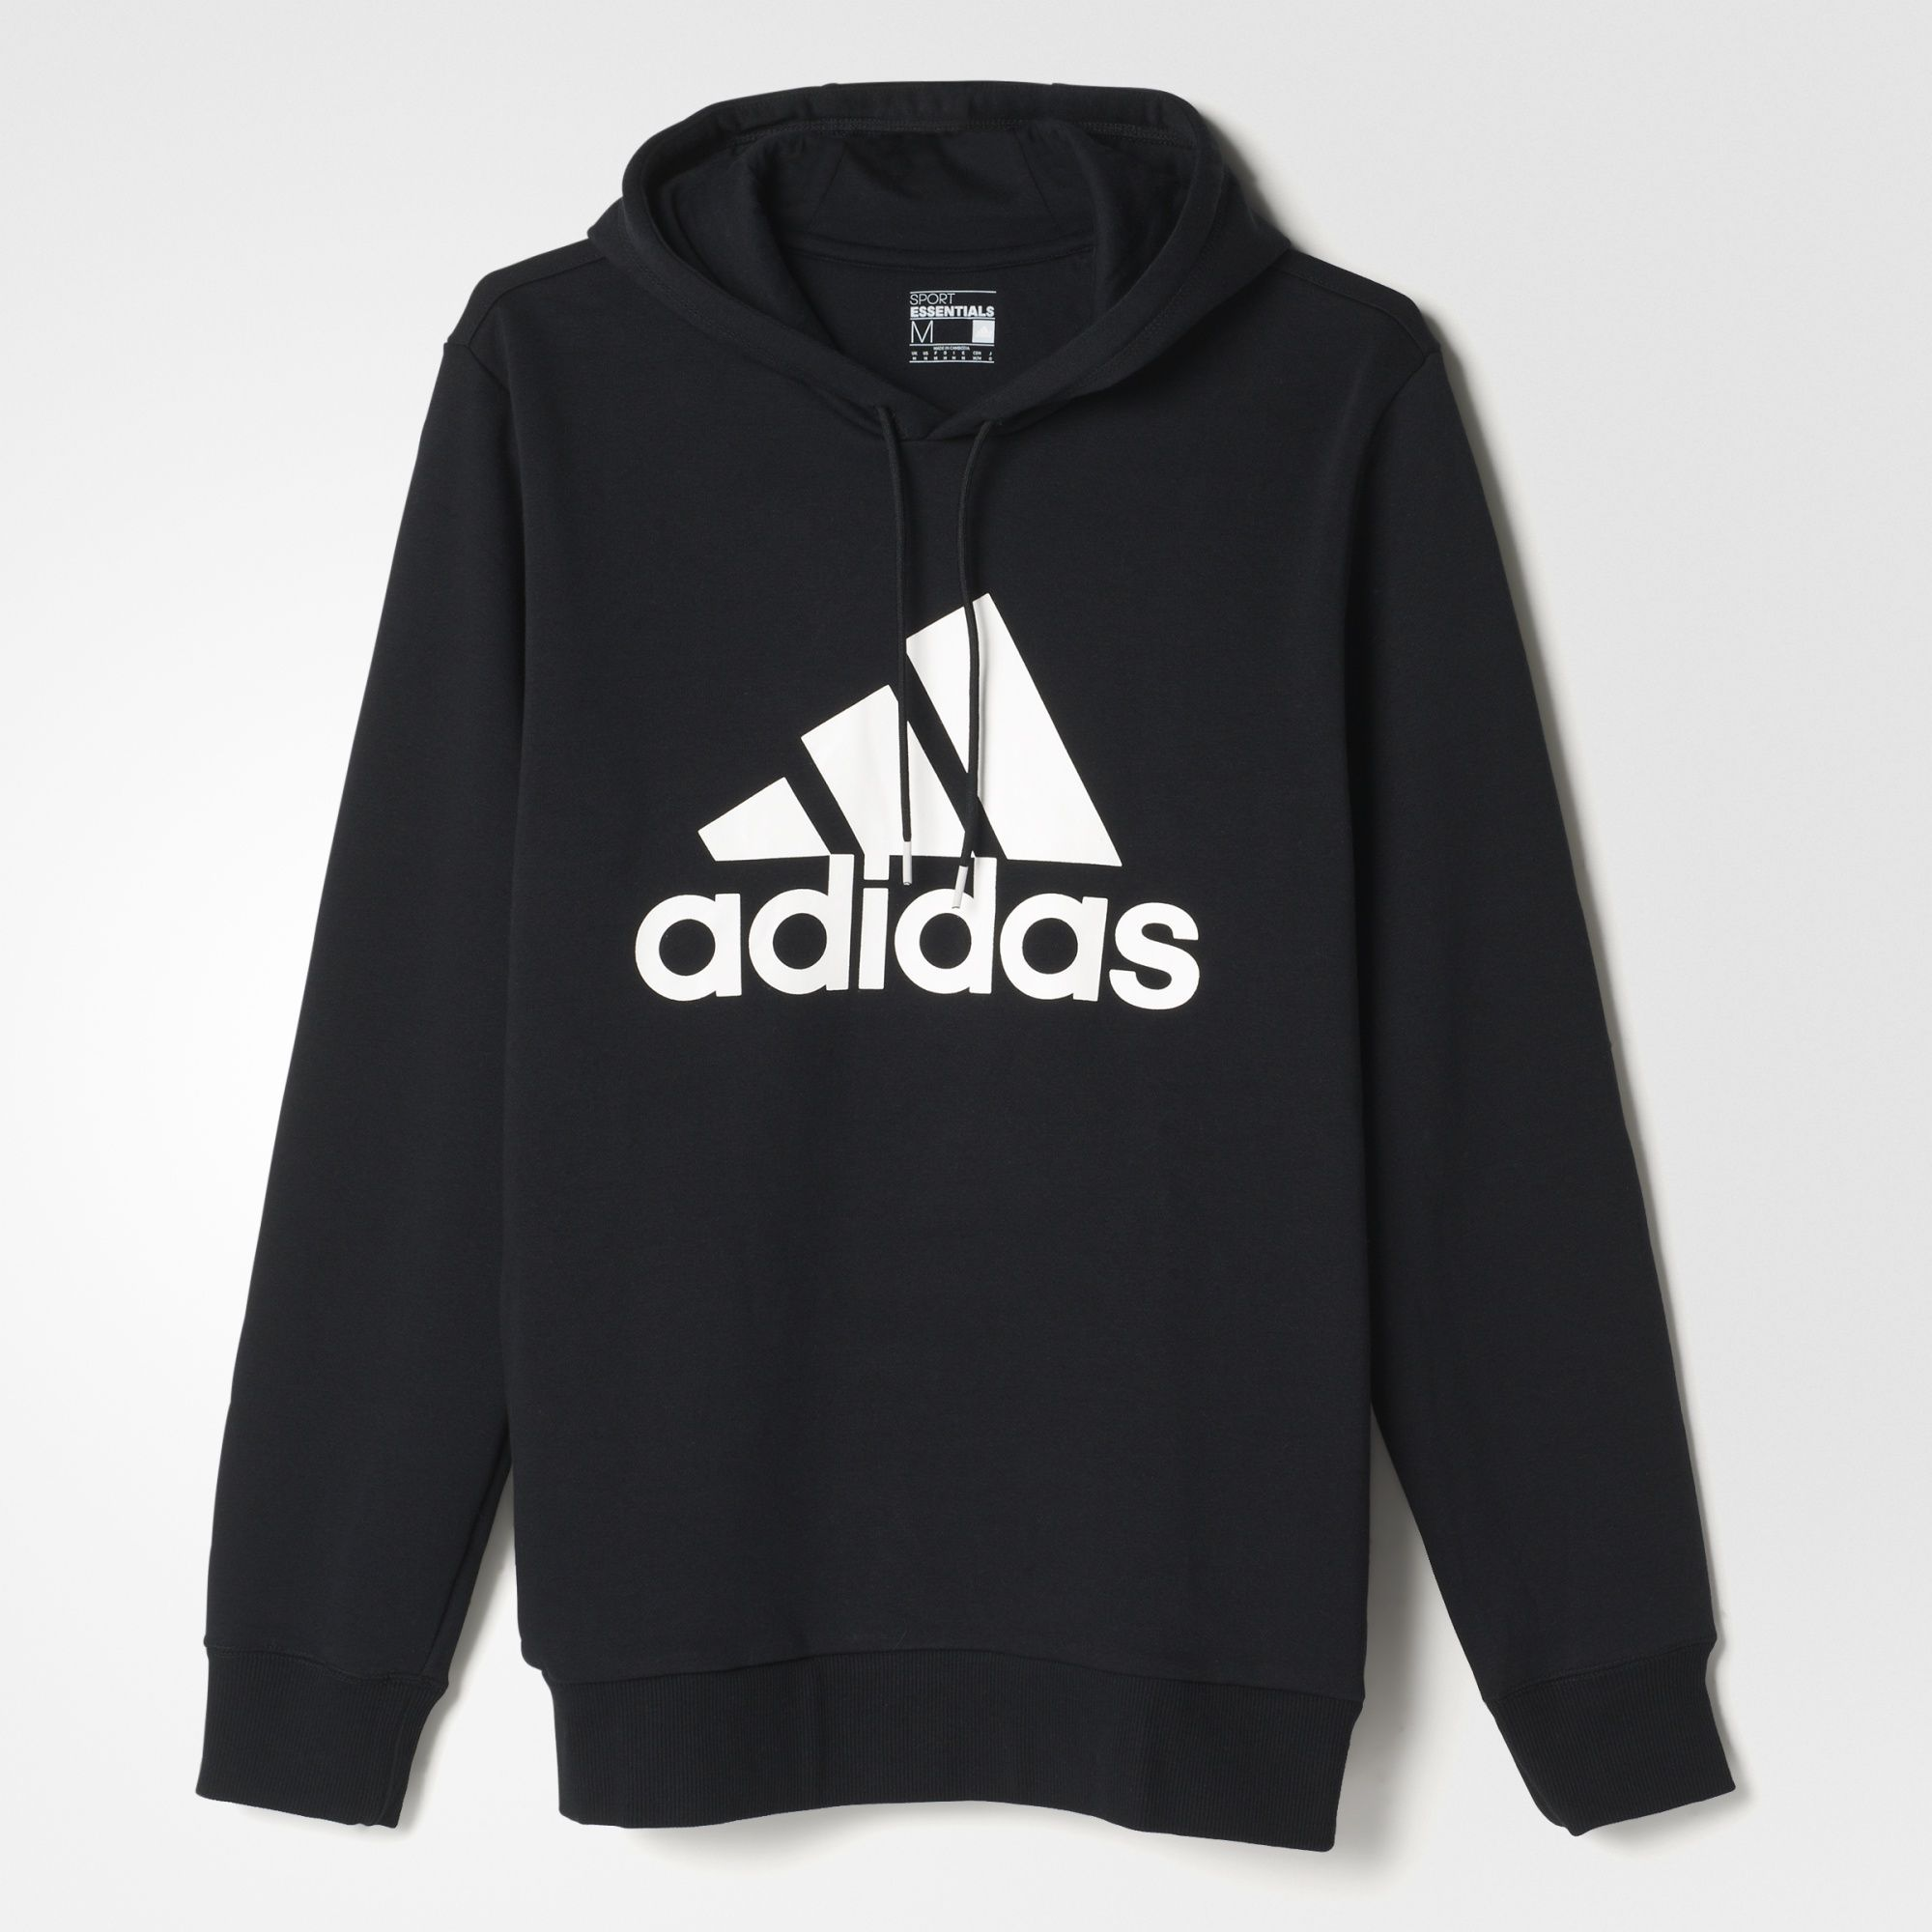 Adidas Men's BTS Black Winter Jacket | GJSportLand